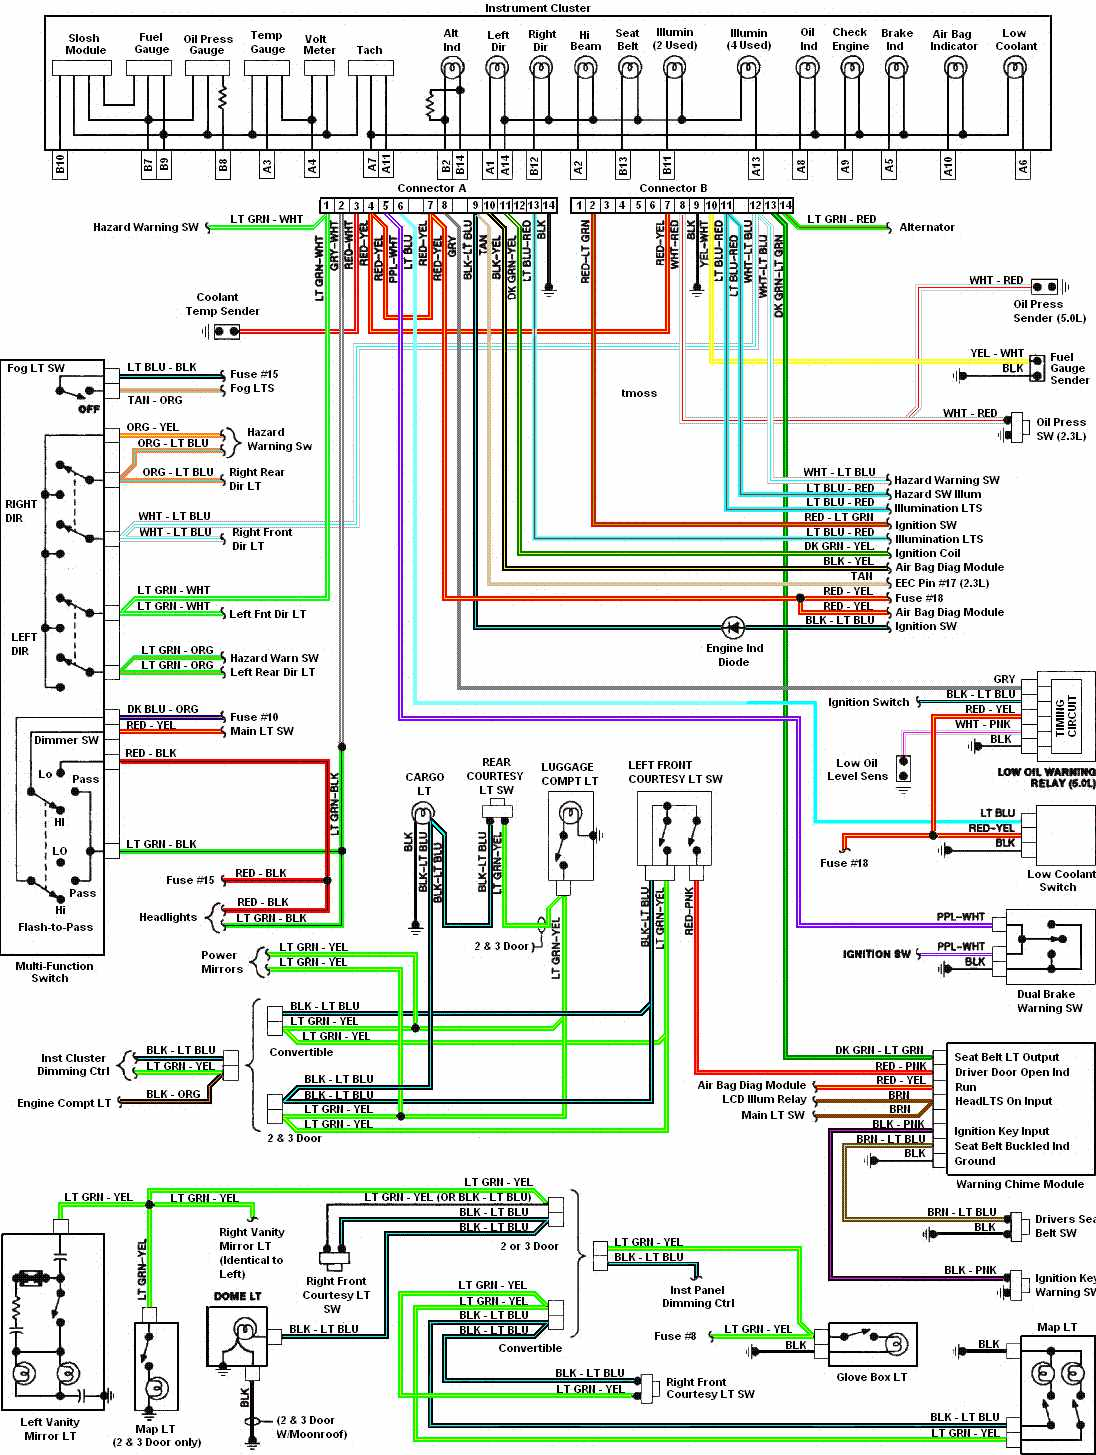 2010 f150 wiring diagram 7 pin trailer plug weird blinker problem ford forum community of